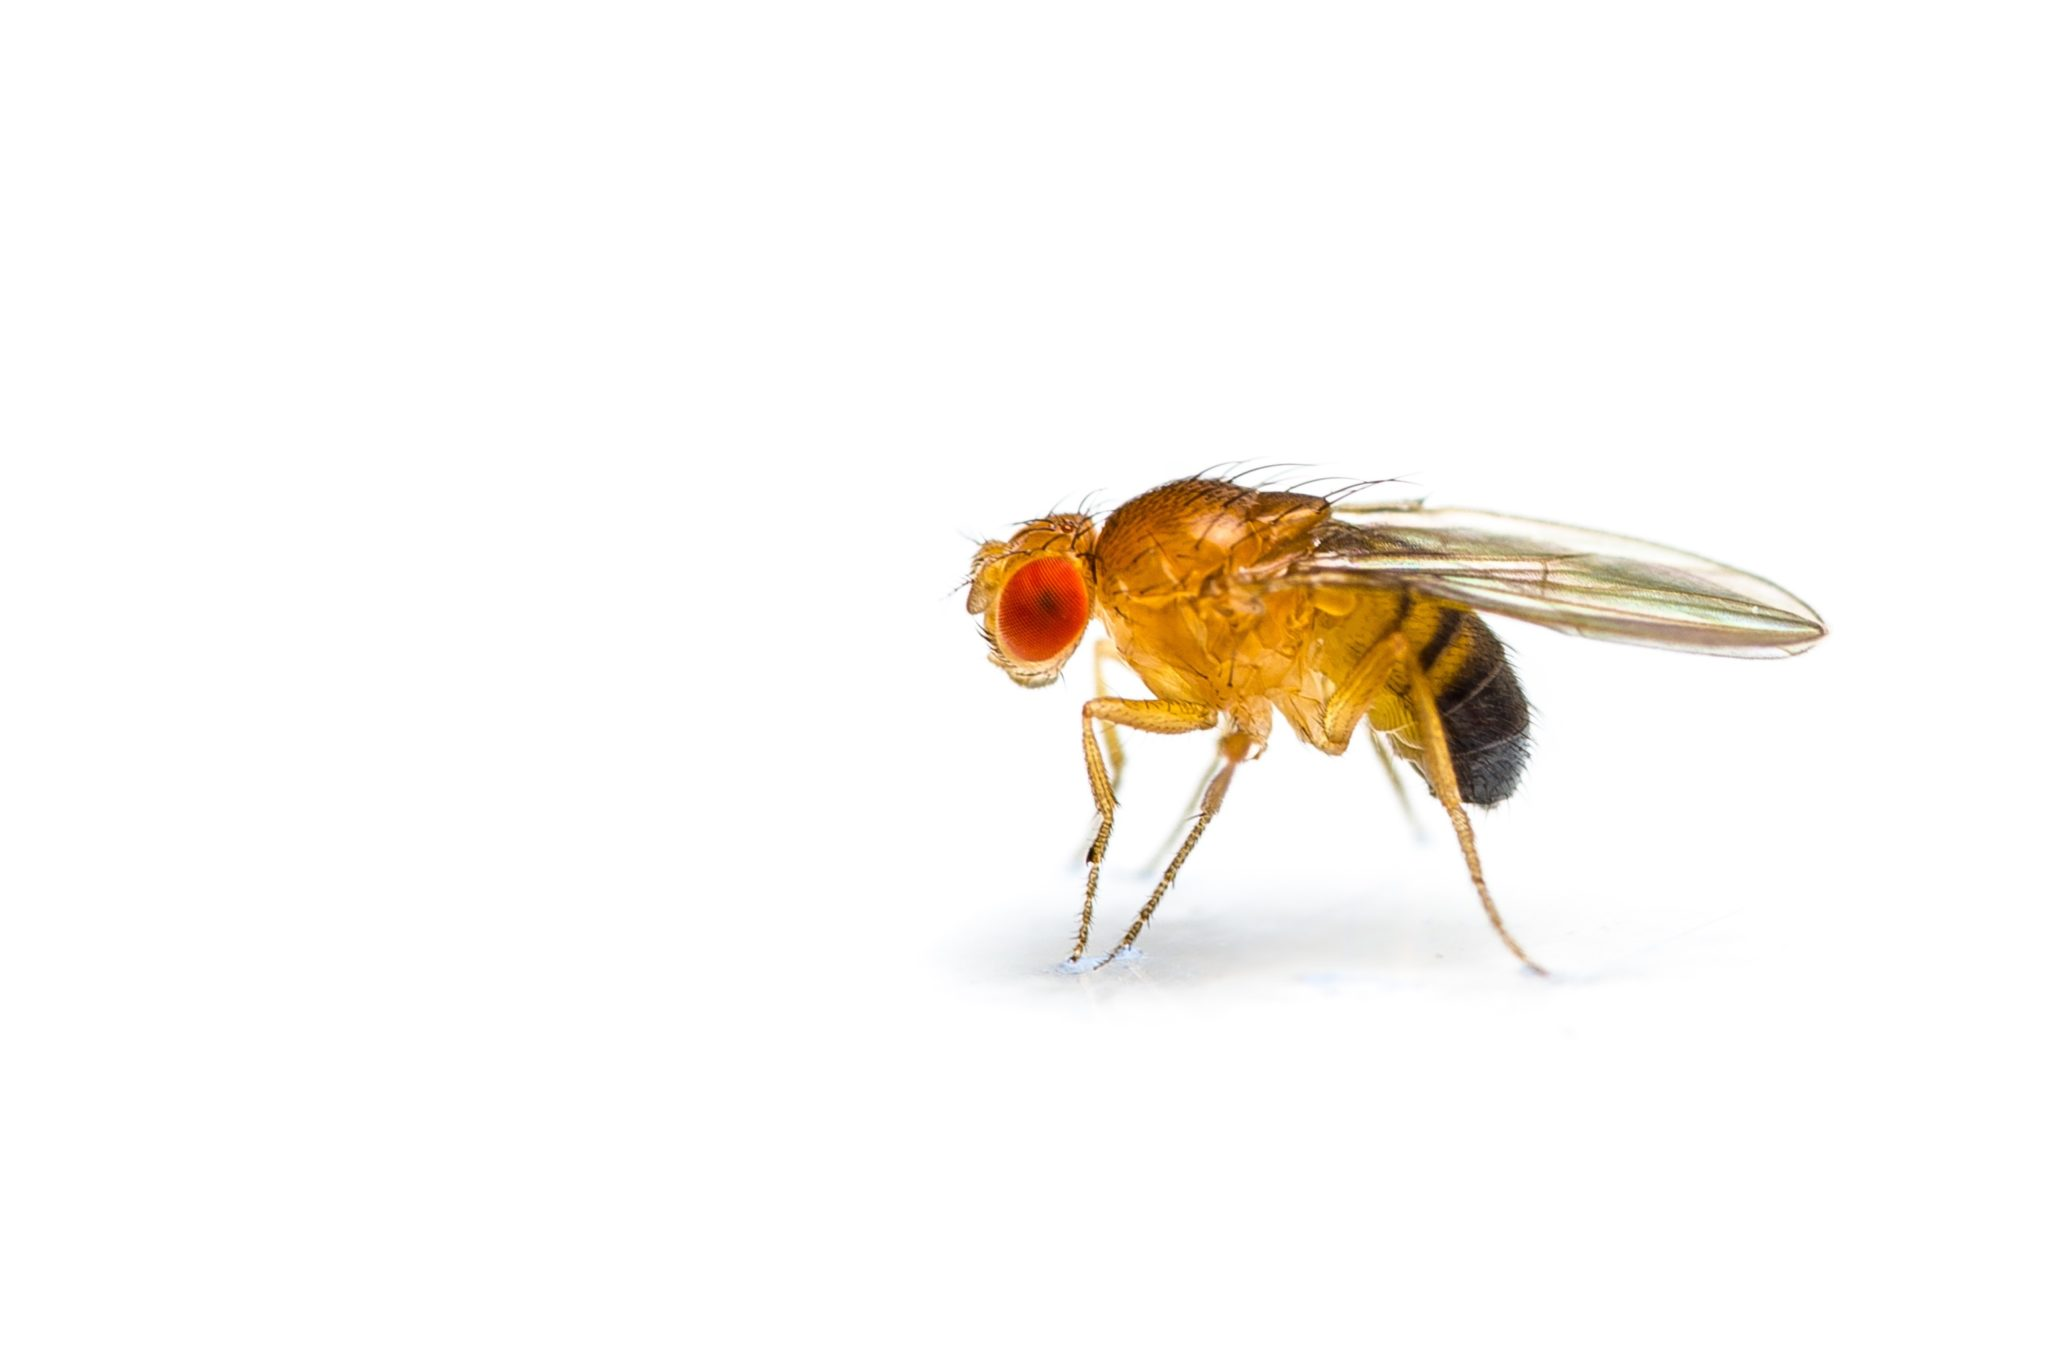 Small fruit fly against white background.